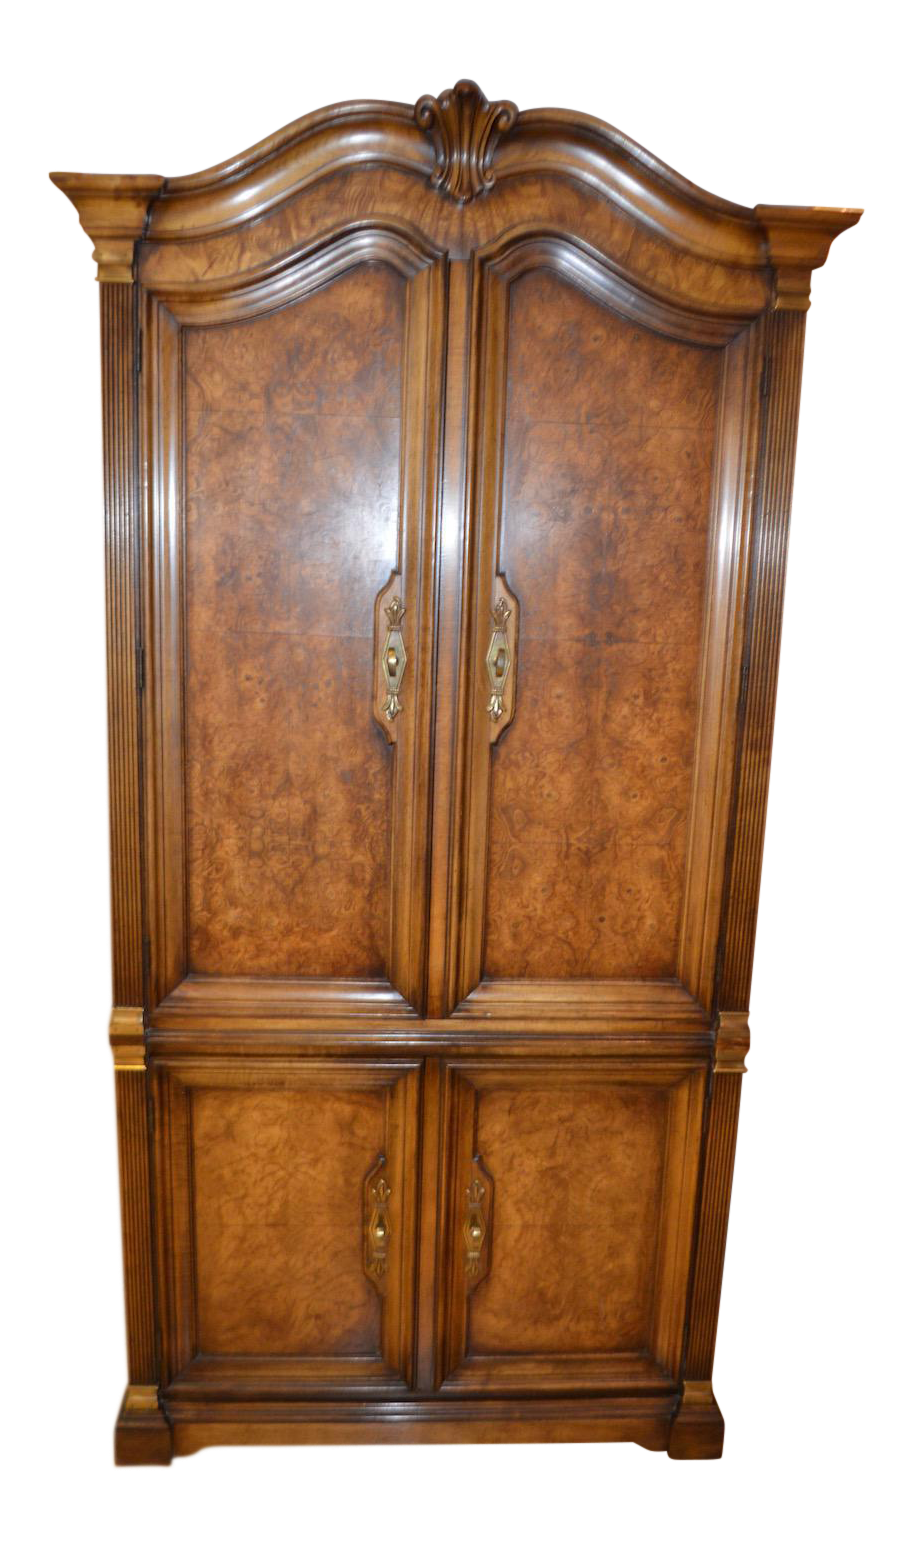 Vintage White Furniture French Country Style Burl Wood Armoire